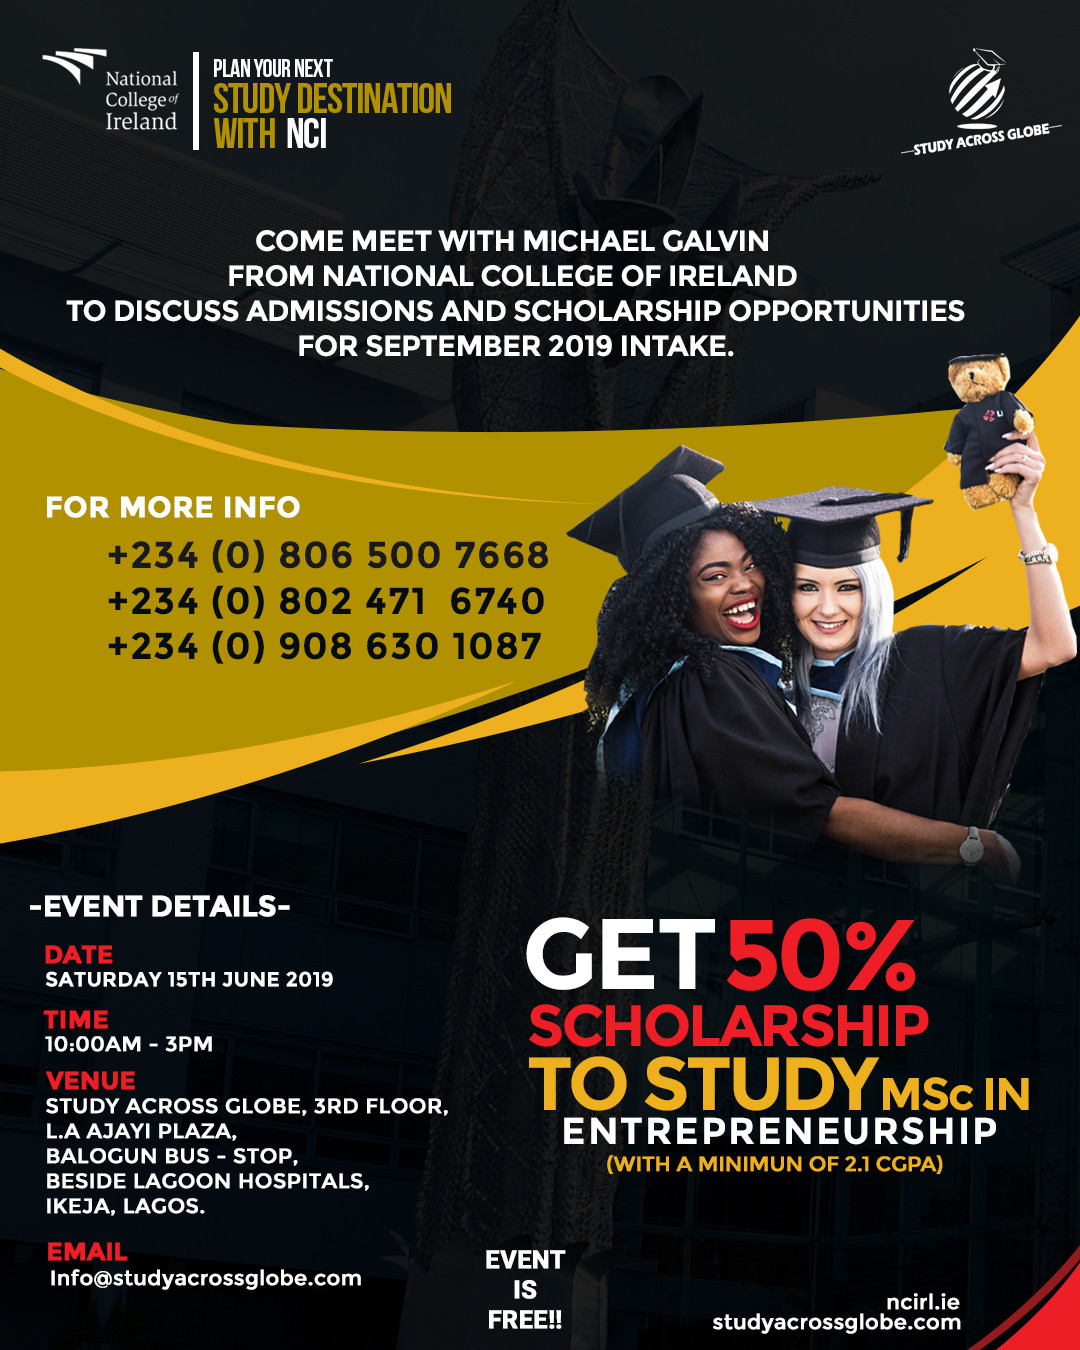 Meet with Michael Galvin from National College Of Ireland to discuss admissions, scholarships and post study visa opportunities for September 2019 intake